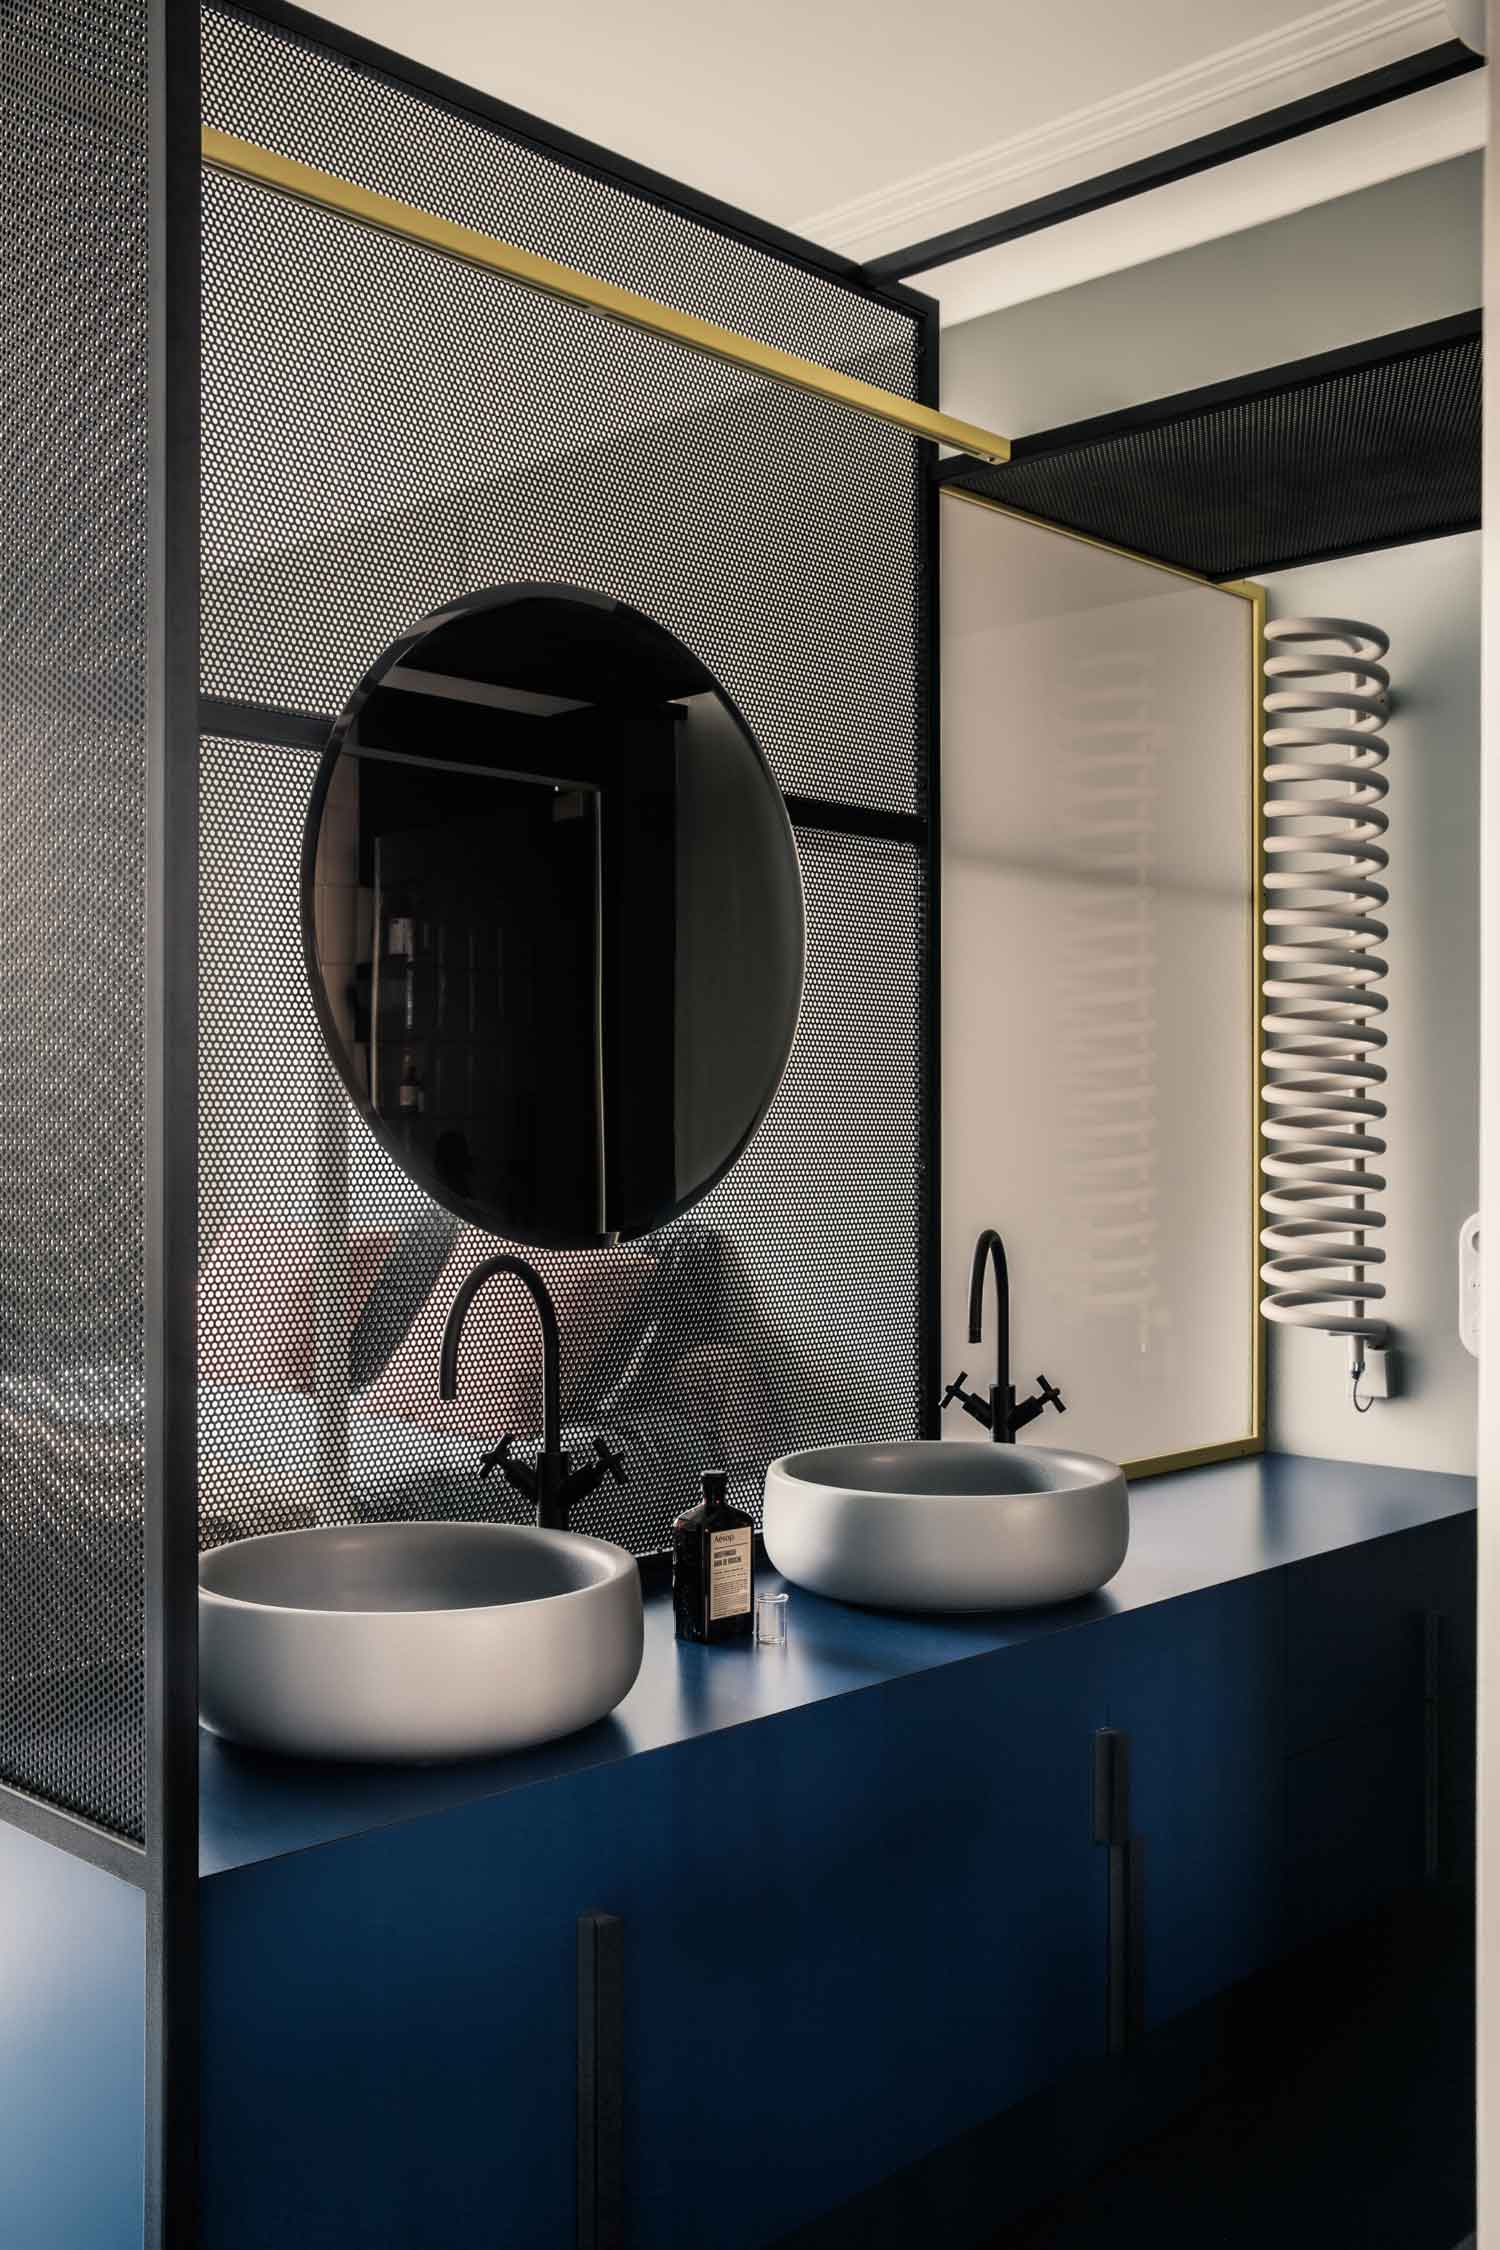 French Metal Rack: Restored Paris Apartment by Marcante-Testa (UdA) Features a Clever Zoning System | Yellowtrace